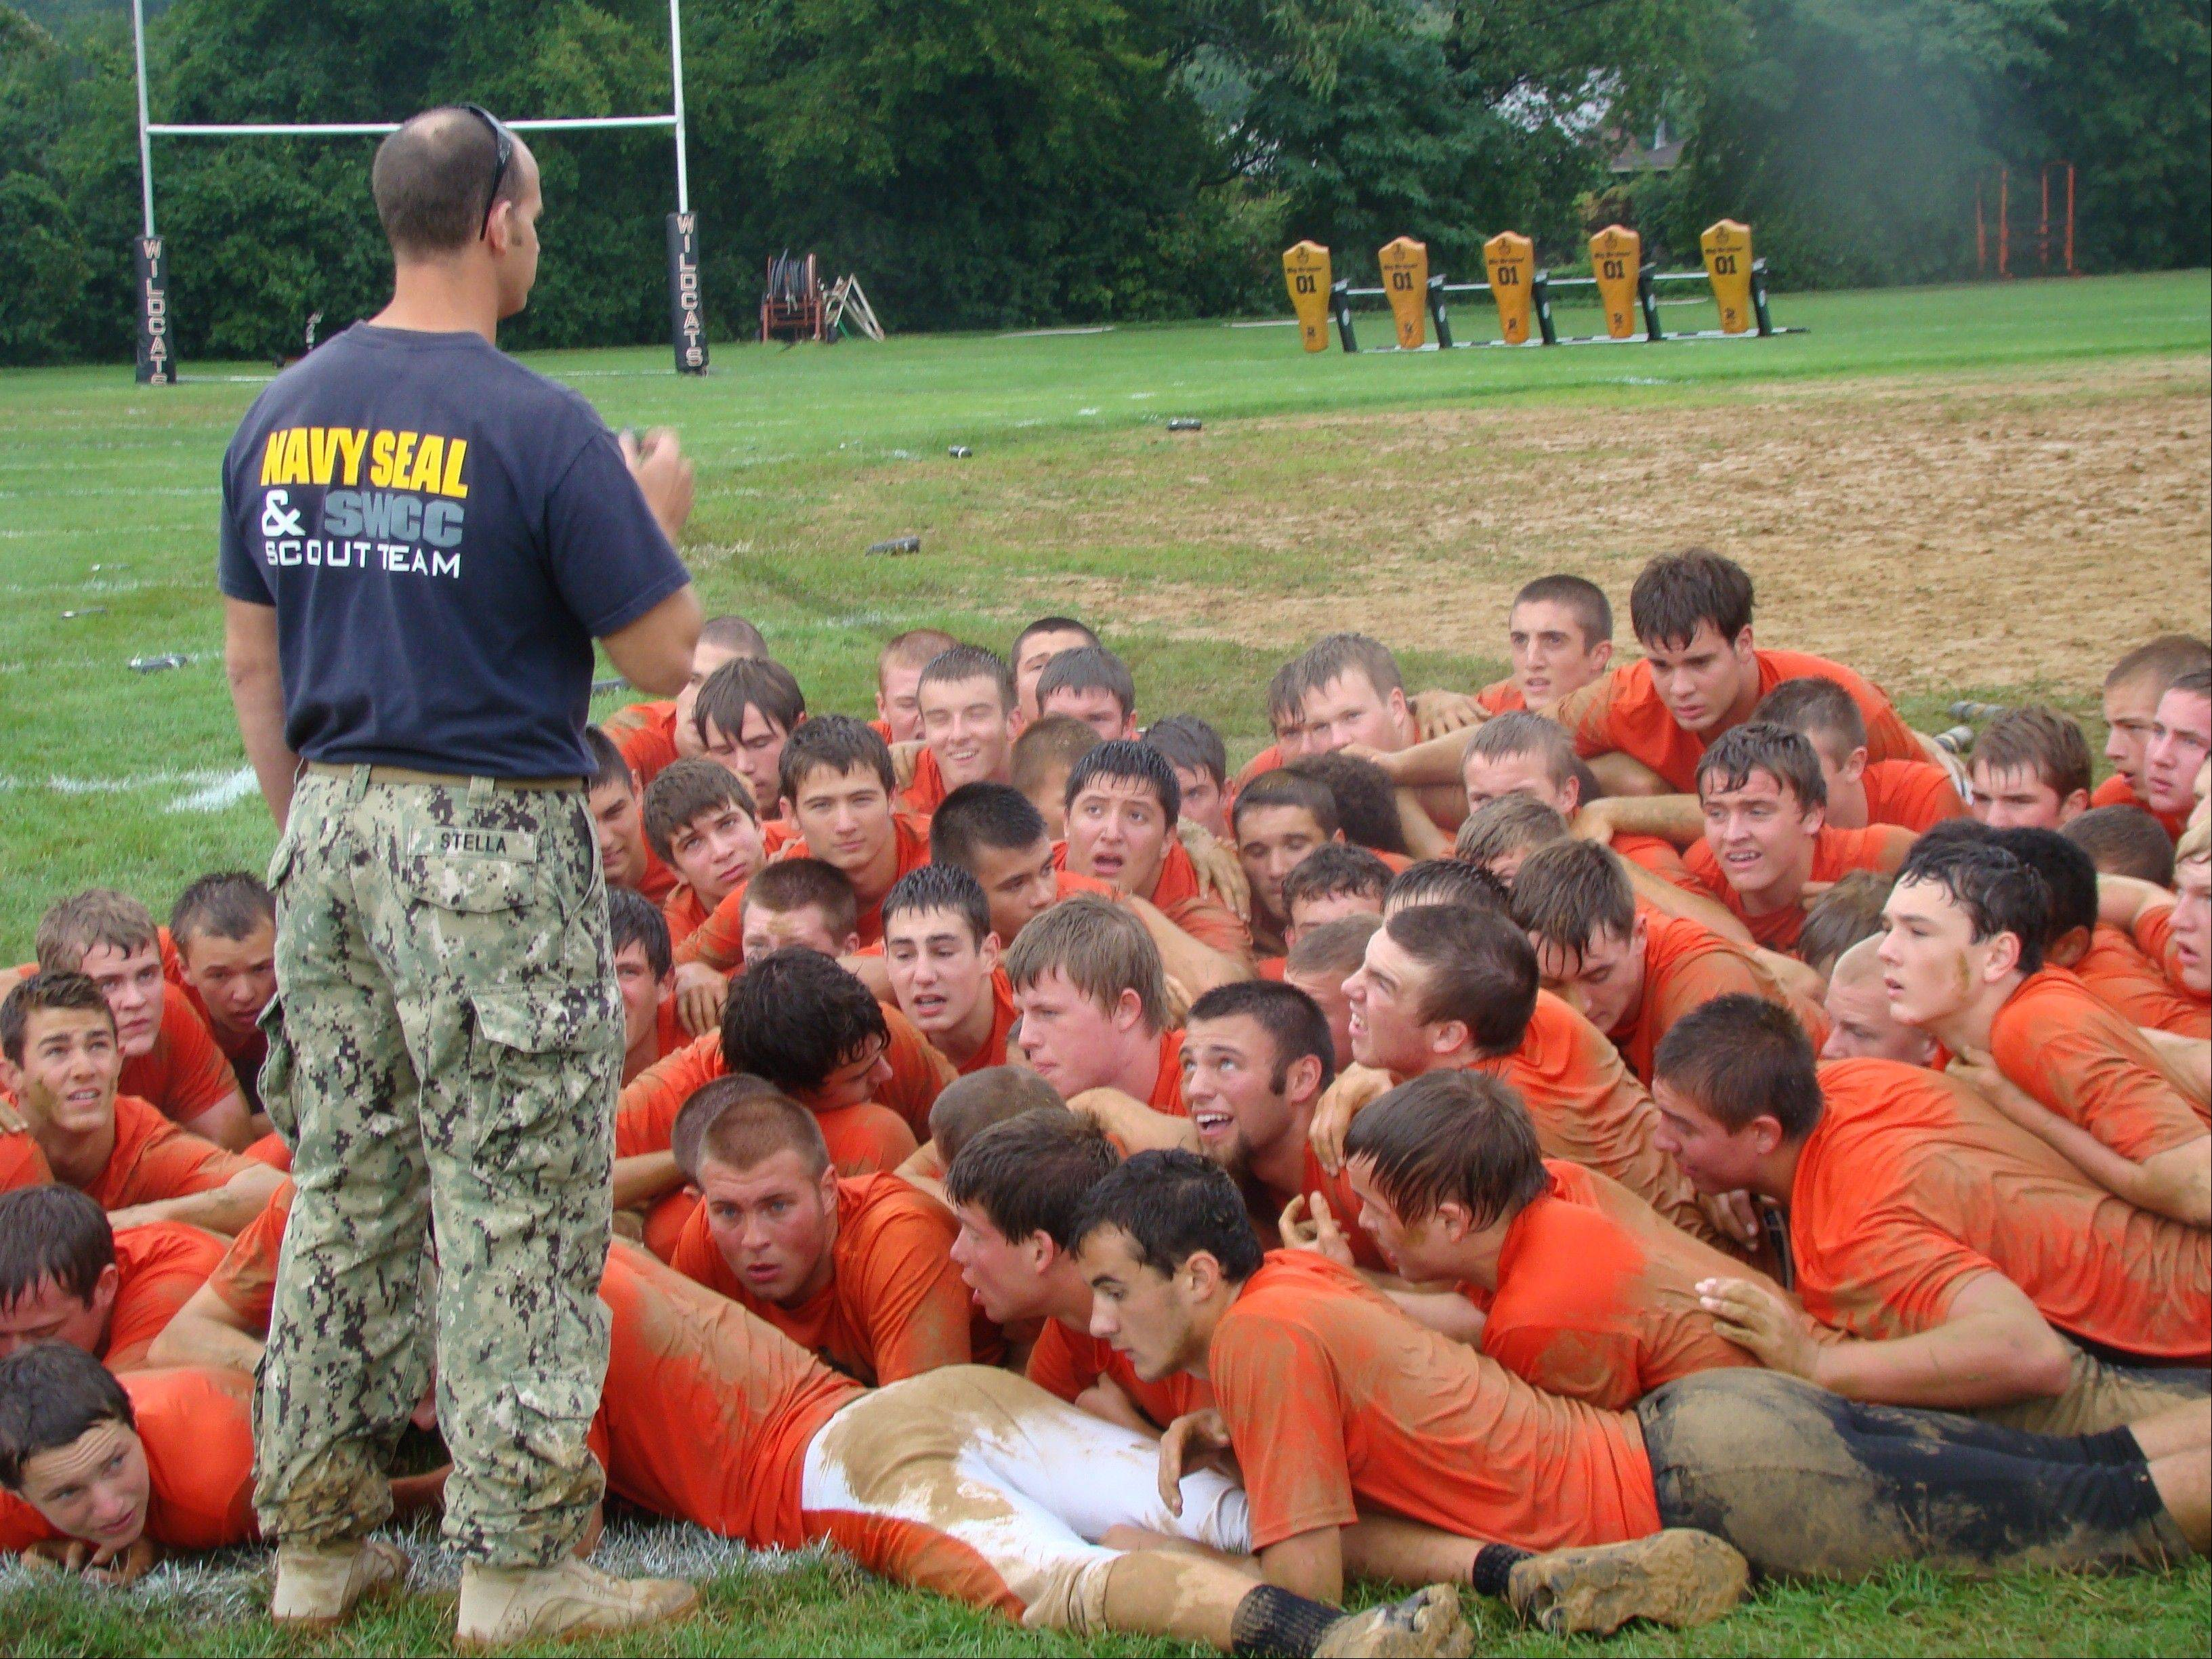 Libertyville's football players band together while getting lessons in overcoming adversity in a mid-August visit from the Navy SEALs.